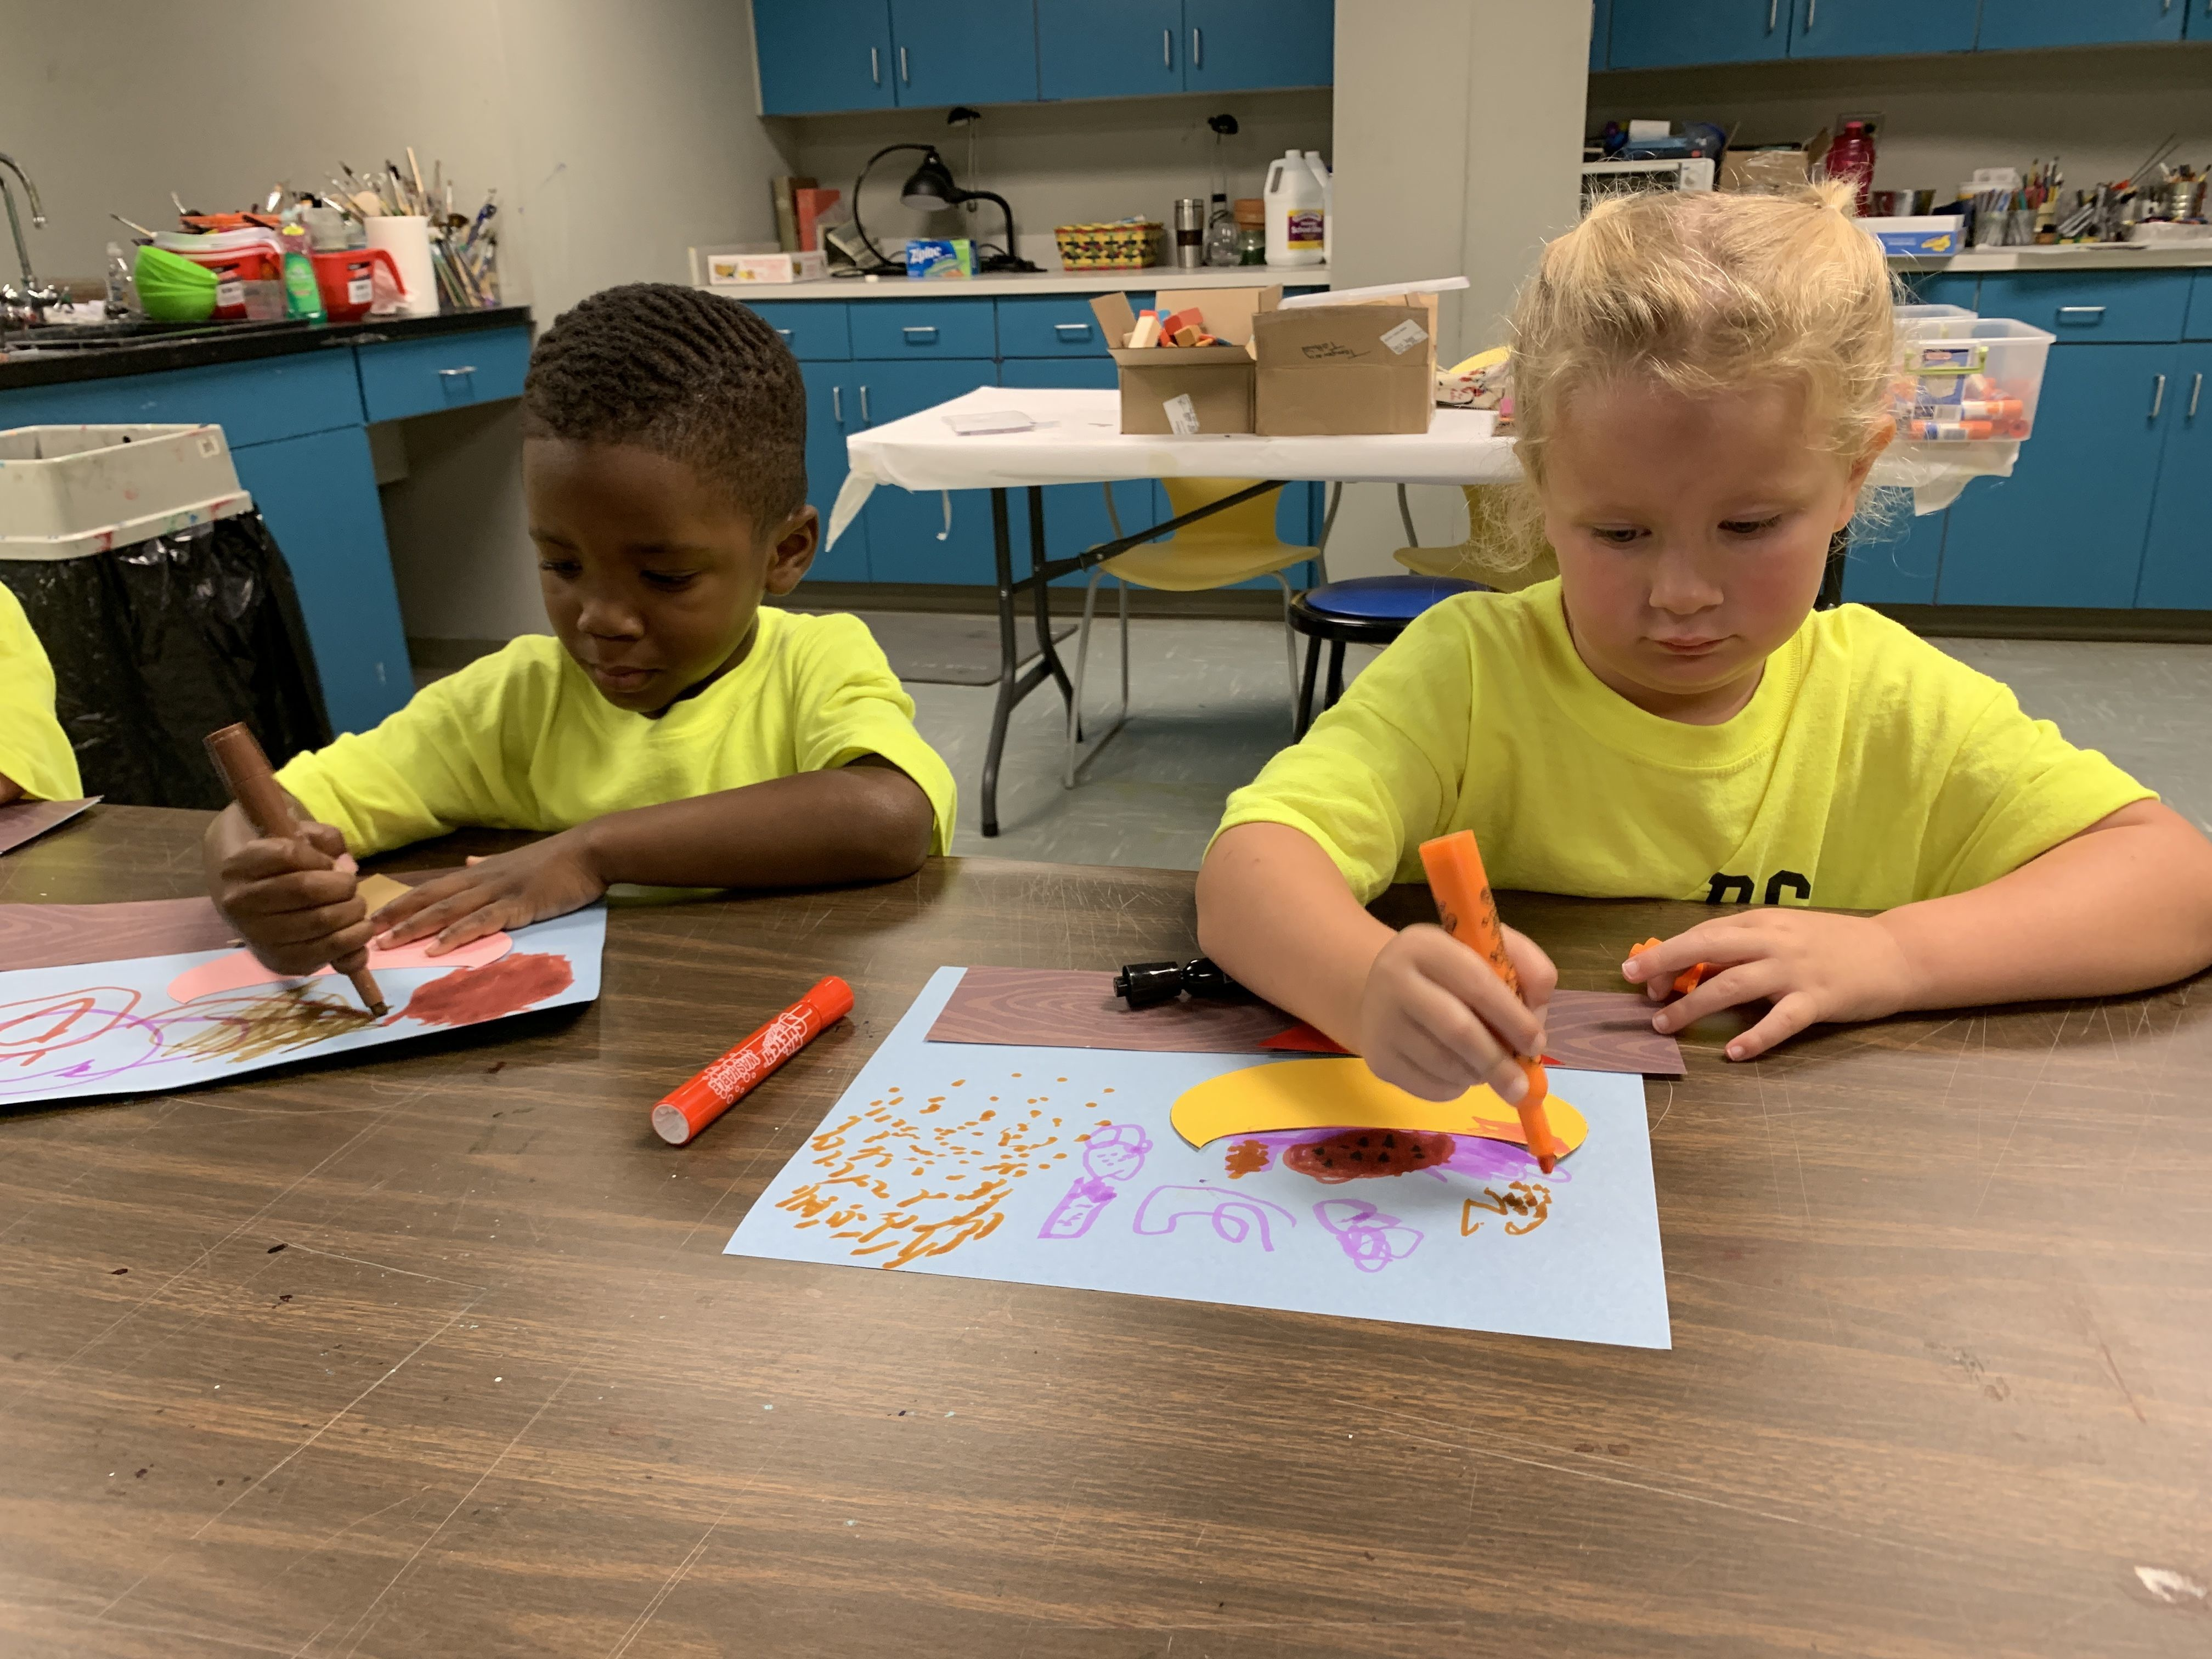 The Columbus Museum receives grants to fund outreach programs for K-12 students